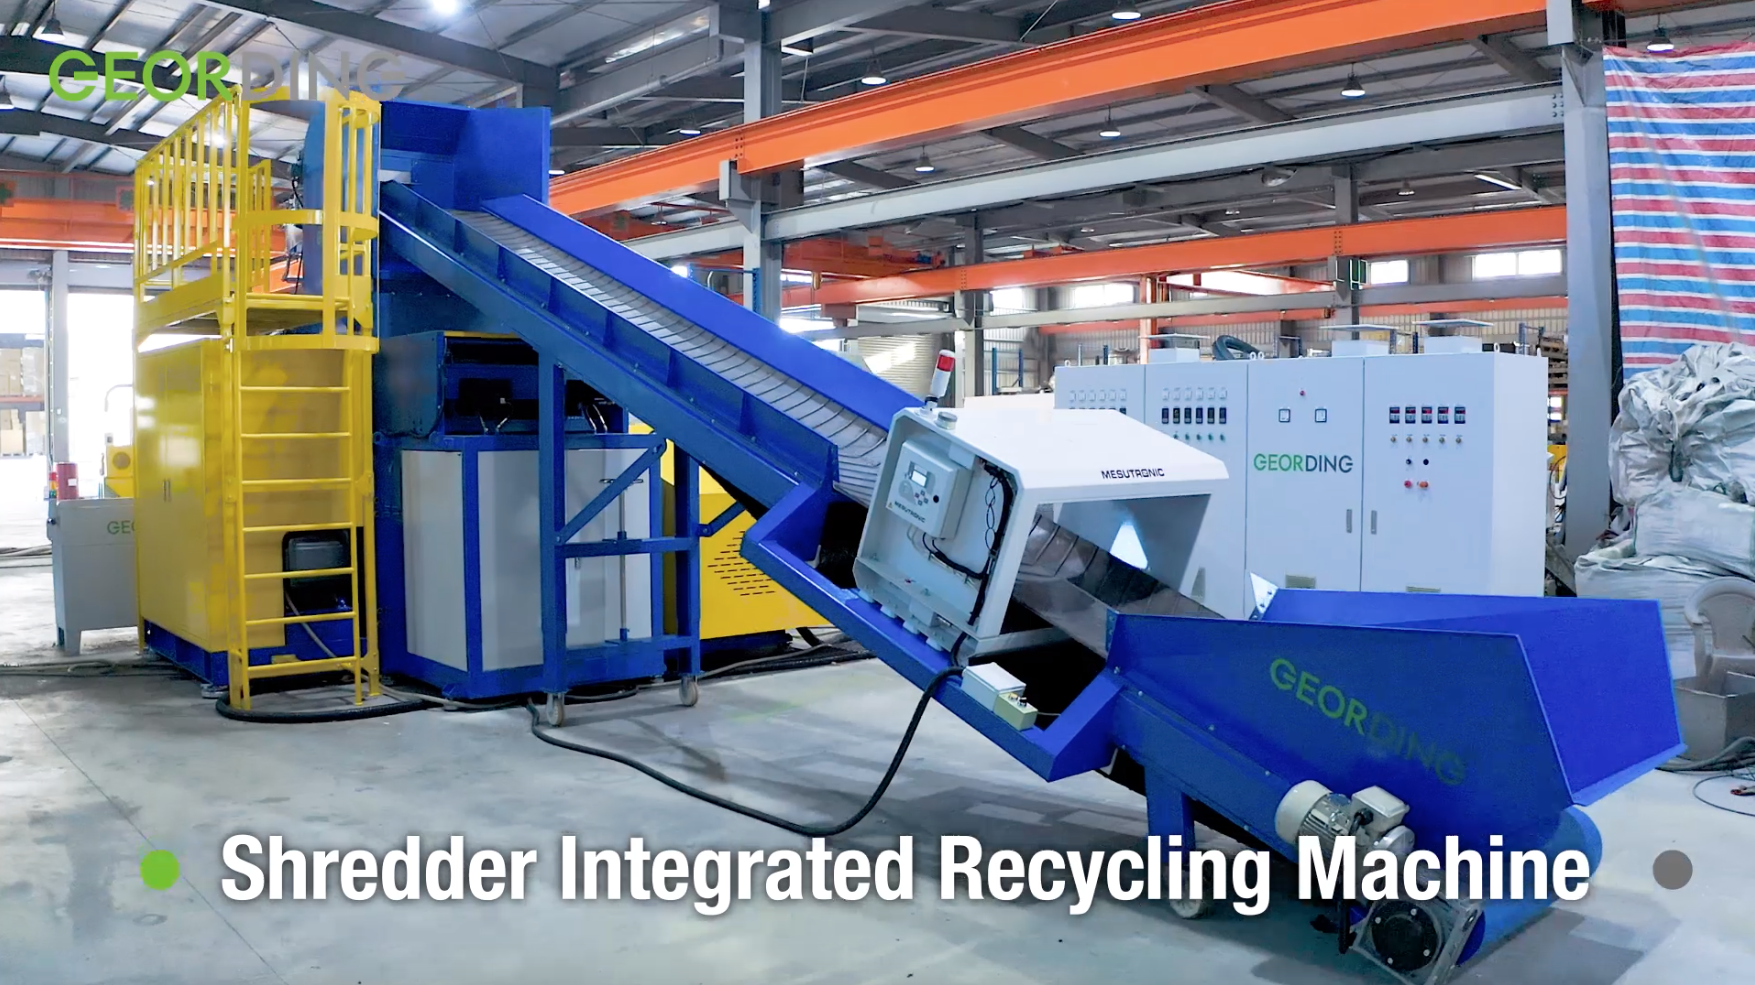 Shredder Integrated Recycling Machine